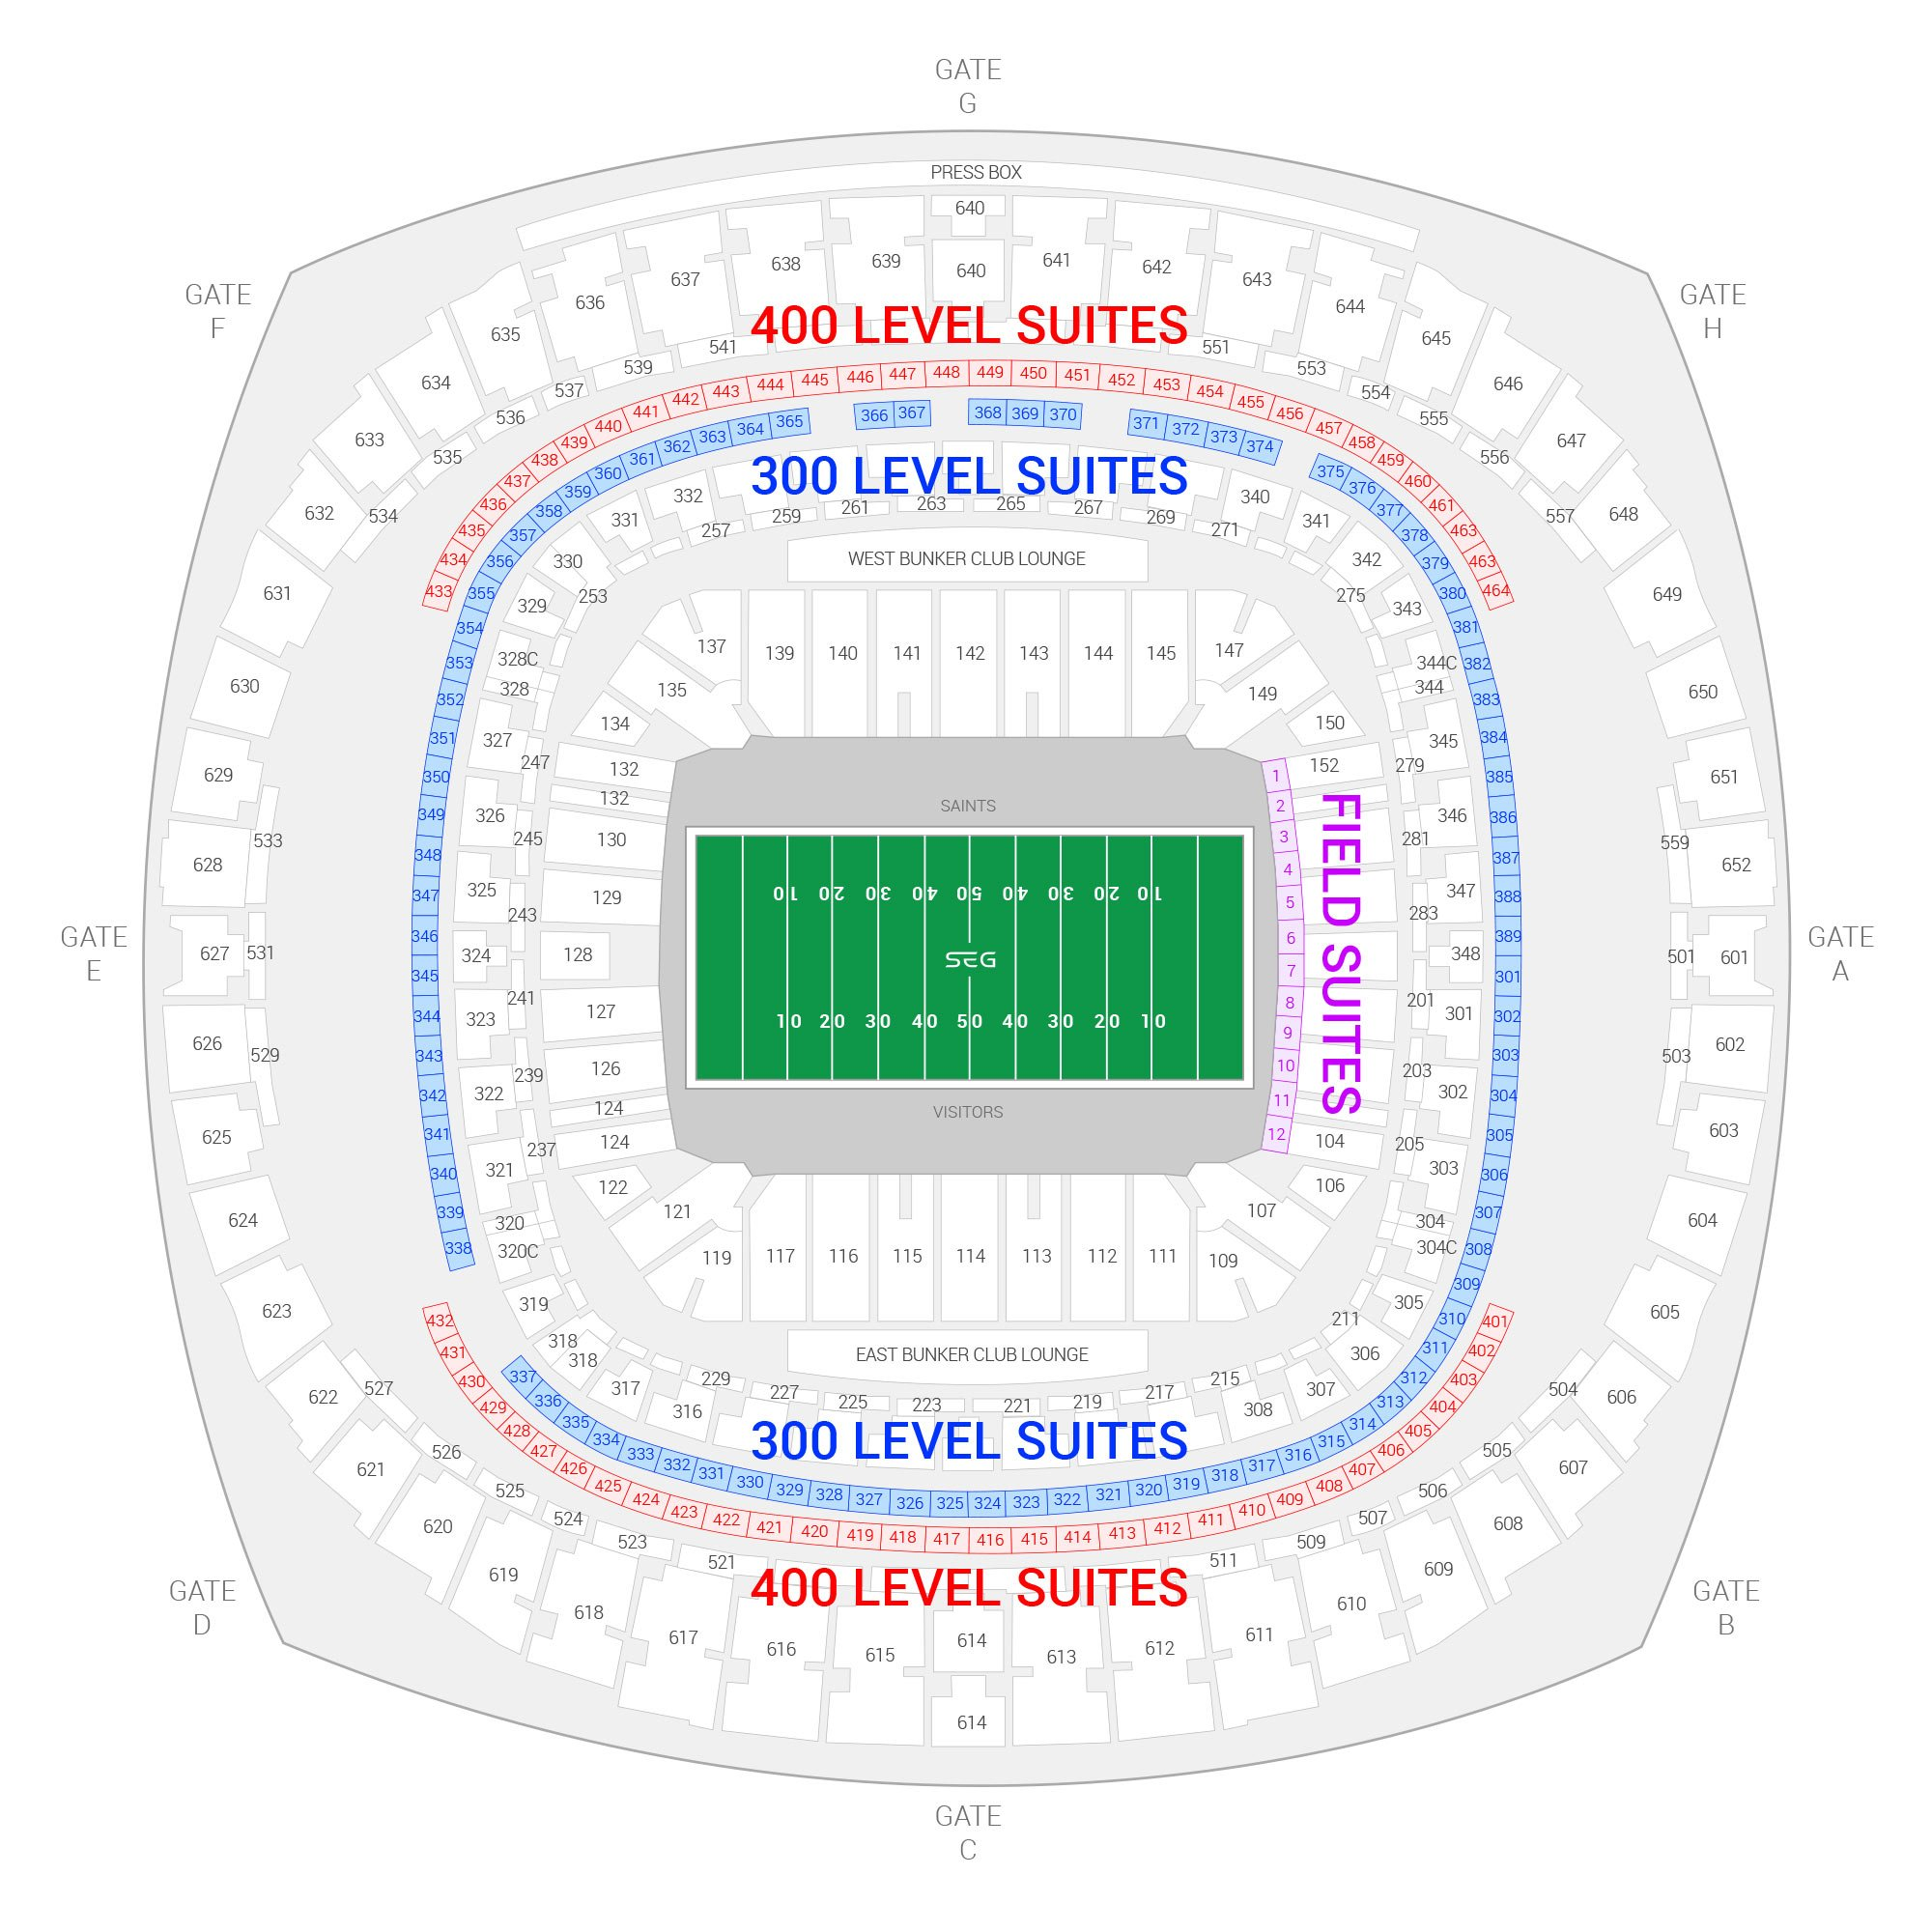 Mercedes-Benz Superdome / New Orleans Saints Suite Map and Seating Chart